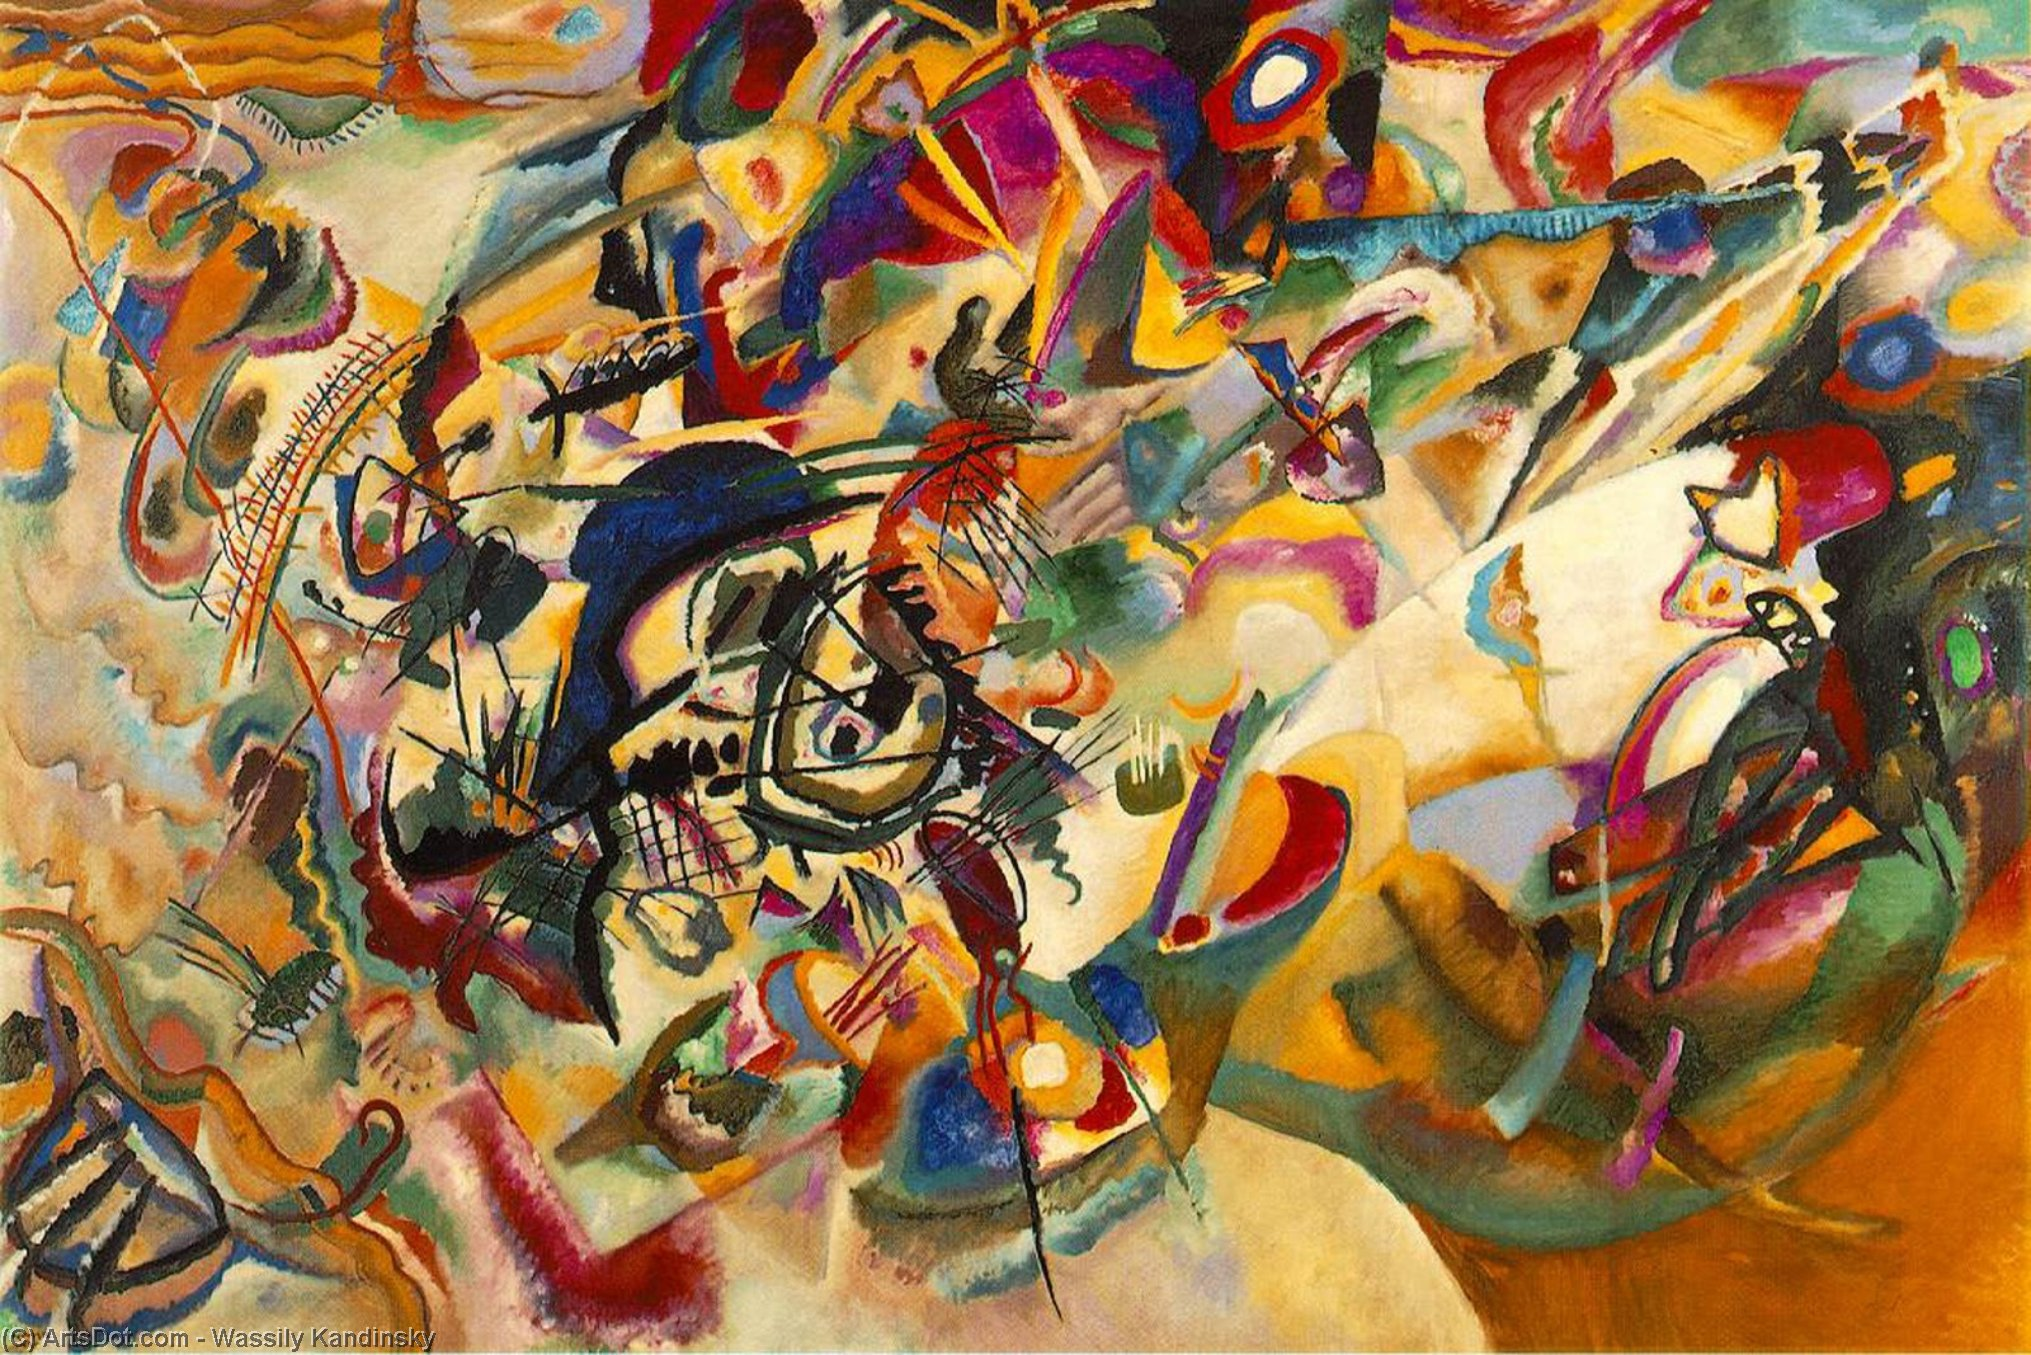 Wikioo.org - The Encyclopedia of Fine Arts - Painting, Artwork by Wassily Kandinsky - Composition VII